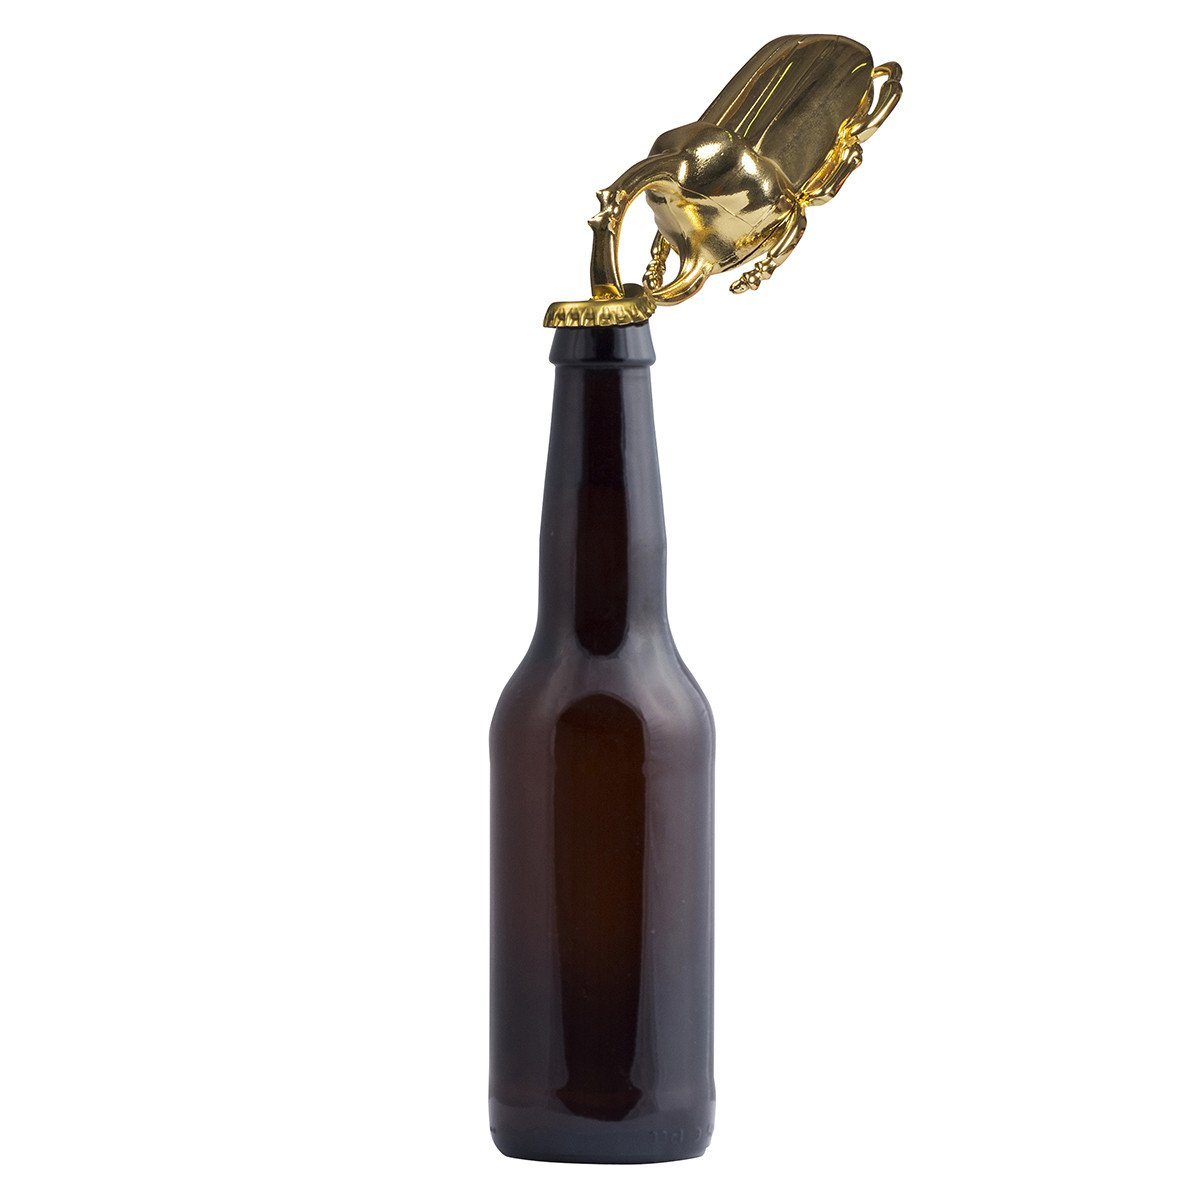 Gold Rhinoceros Beetle Solid Metal Bottle Opener | DOIY